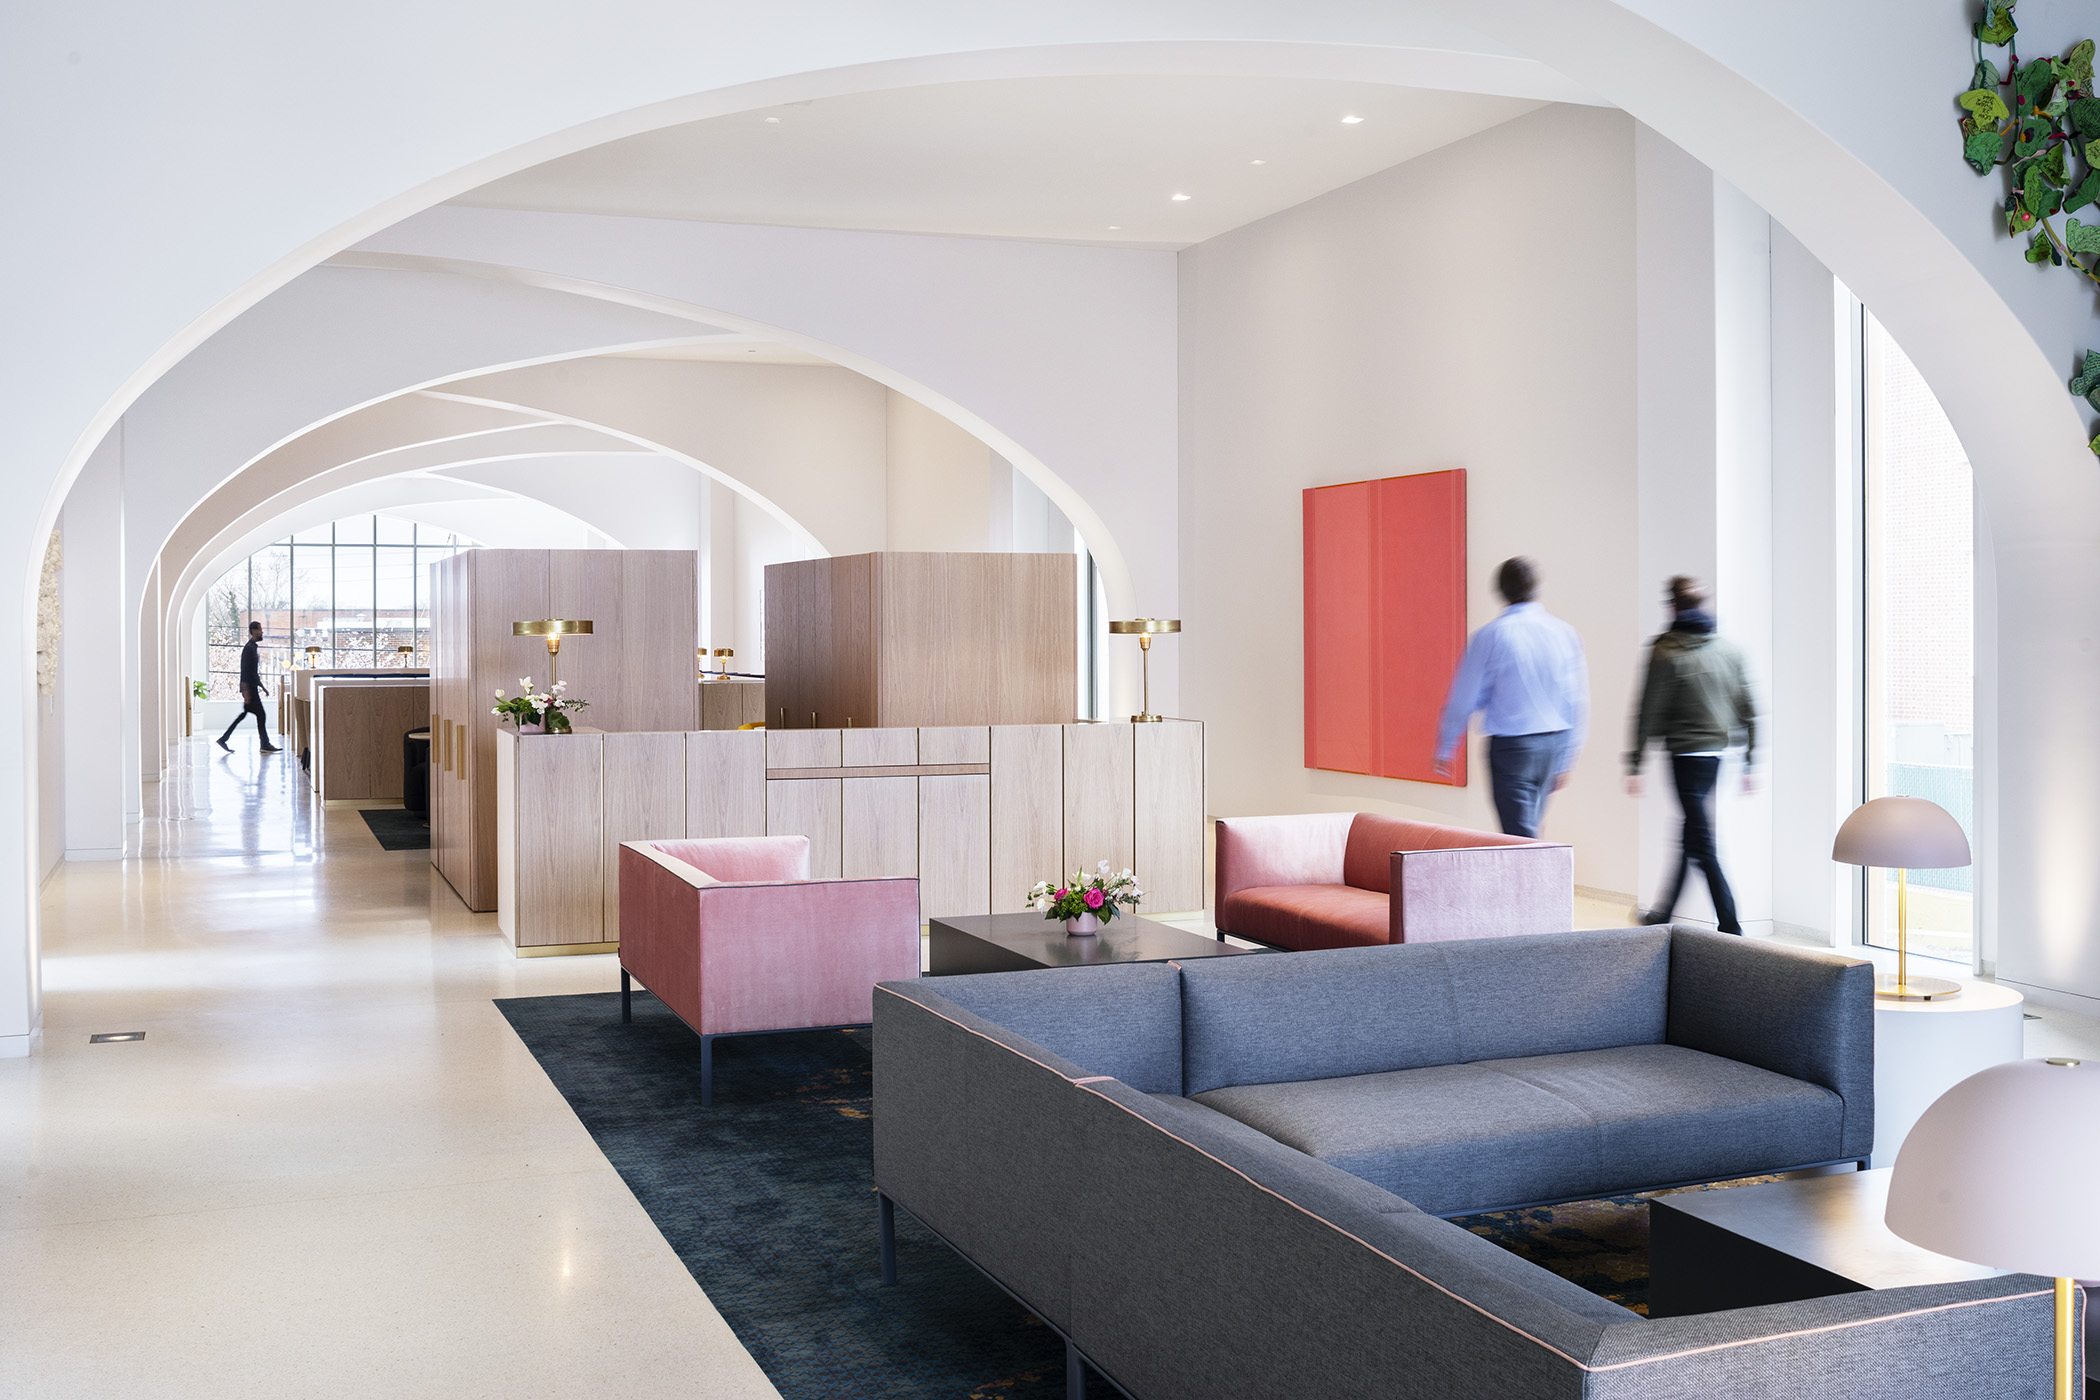 An interior white space with colorful couches